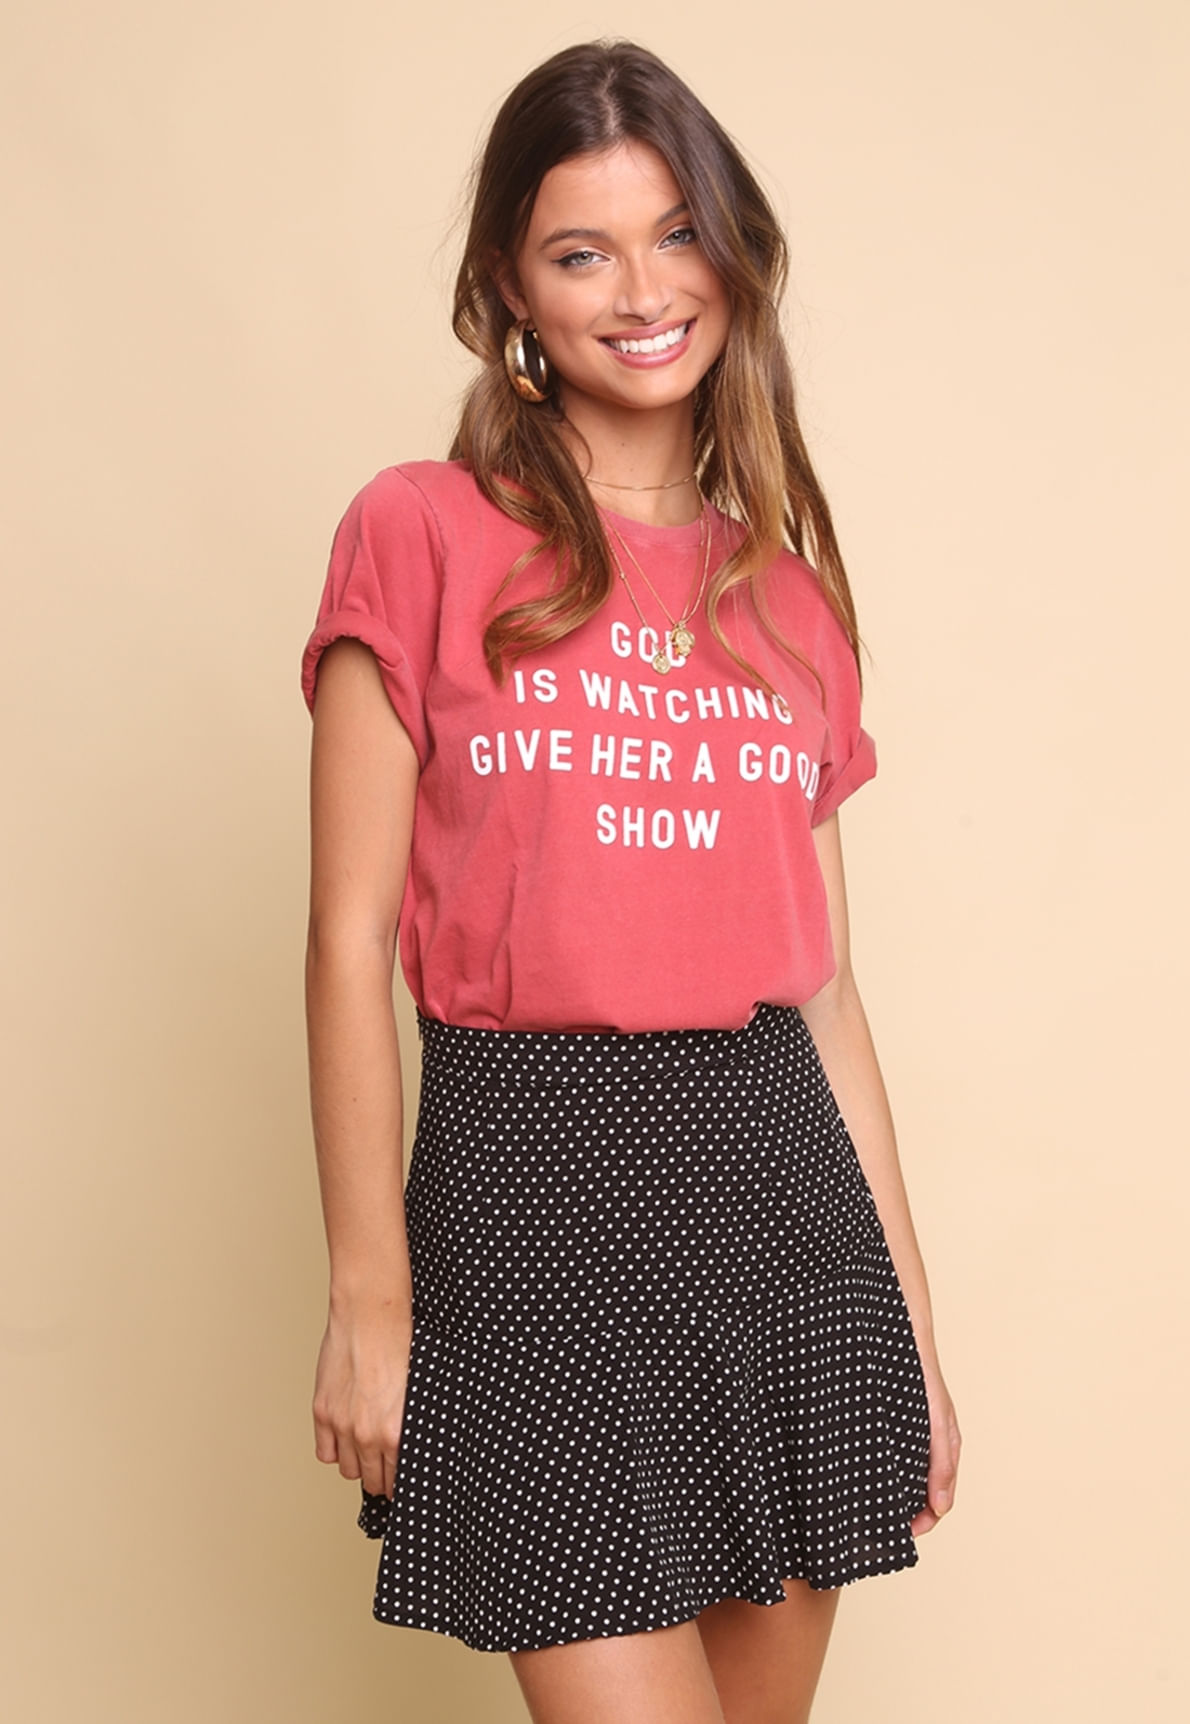 30185-t-shirt-god-is-watching-mundo-lolita-mundo-lolita-02